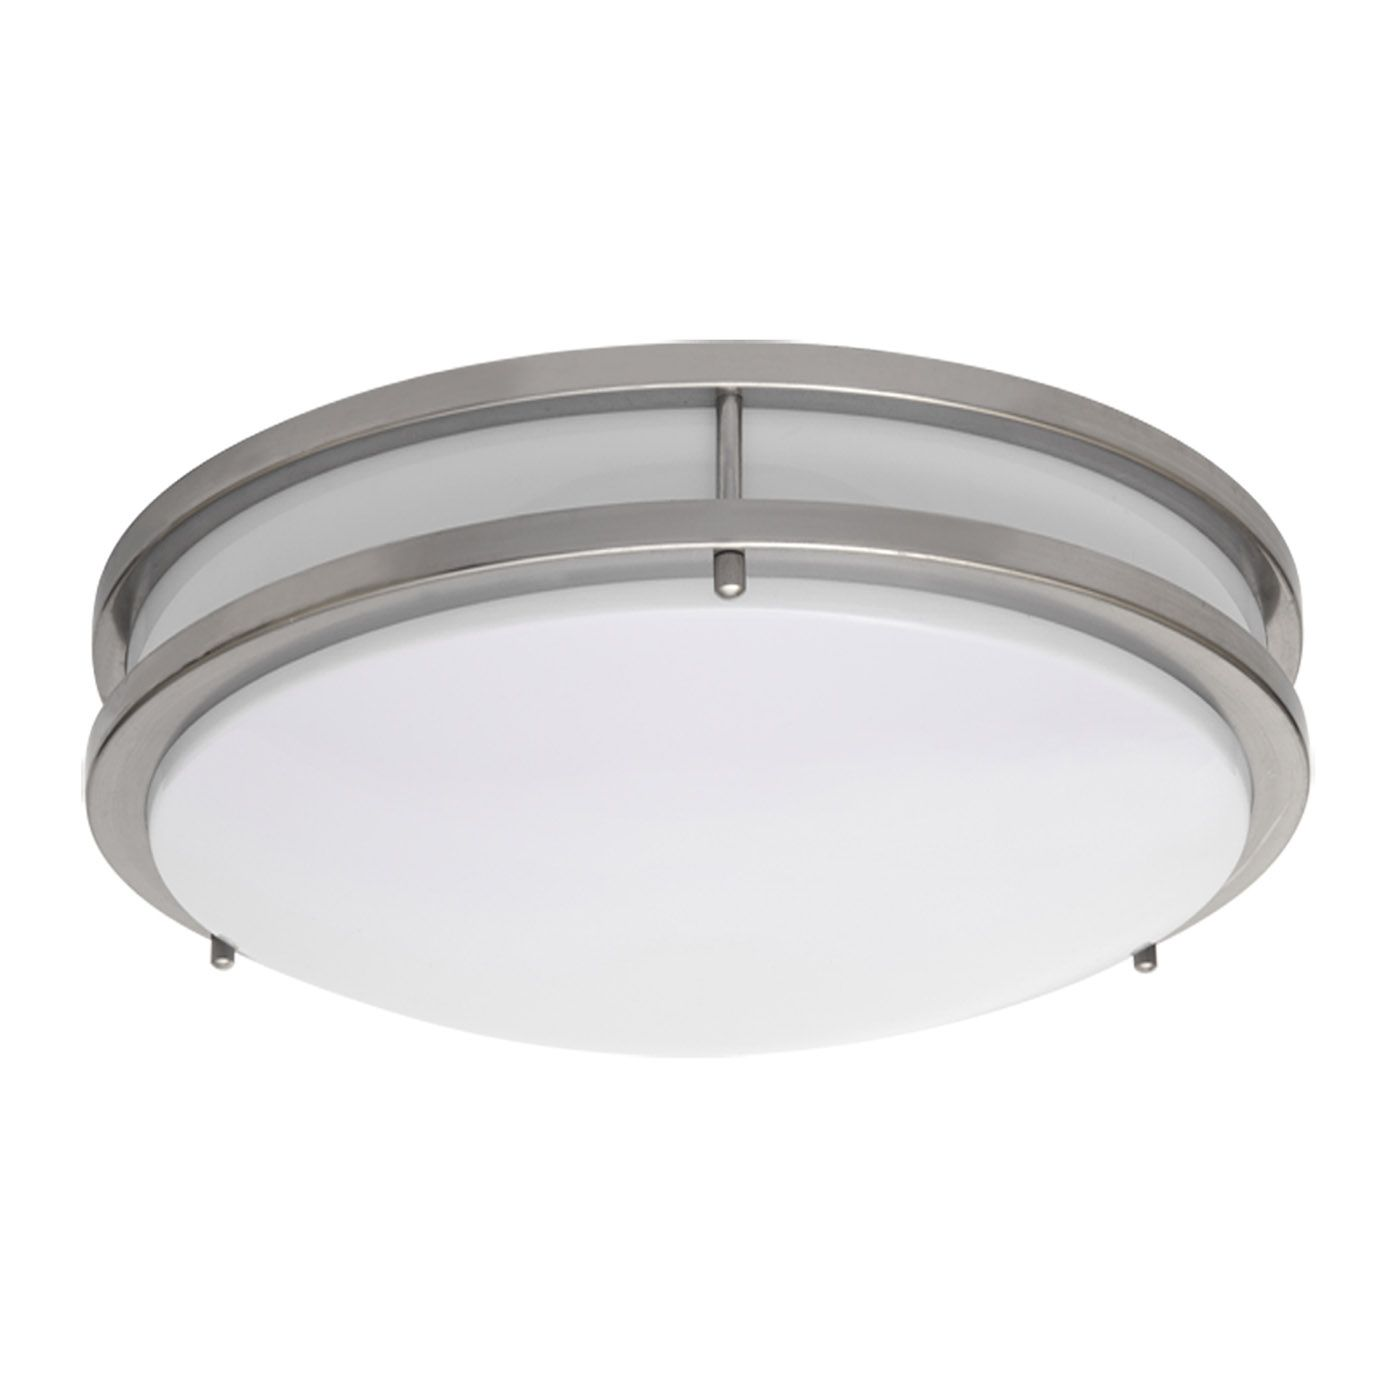 Amax Lighting LED Ceiling Fixtures LED JR00 LED Two Ring Flush